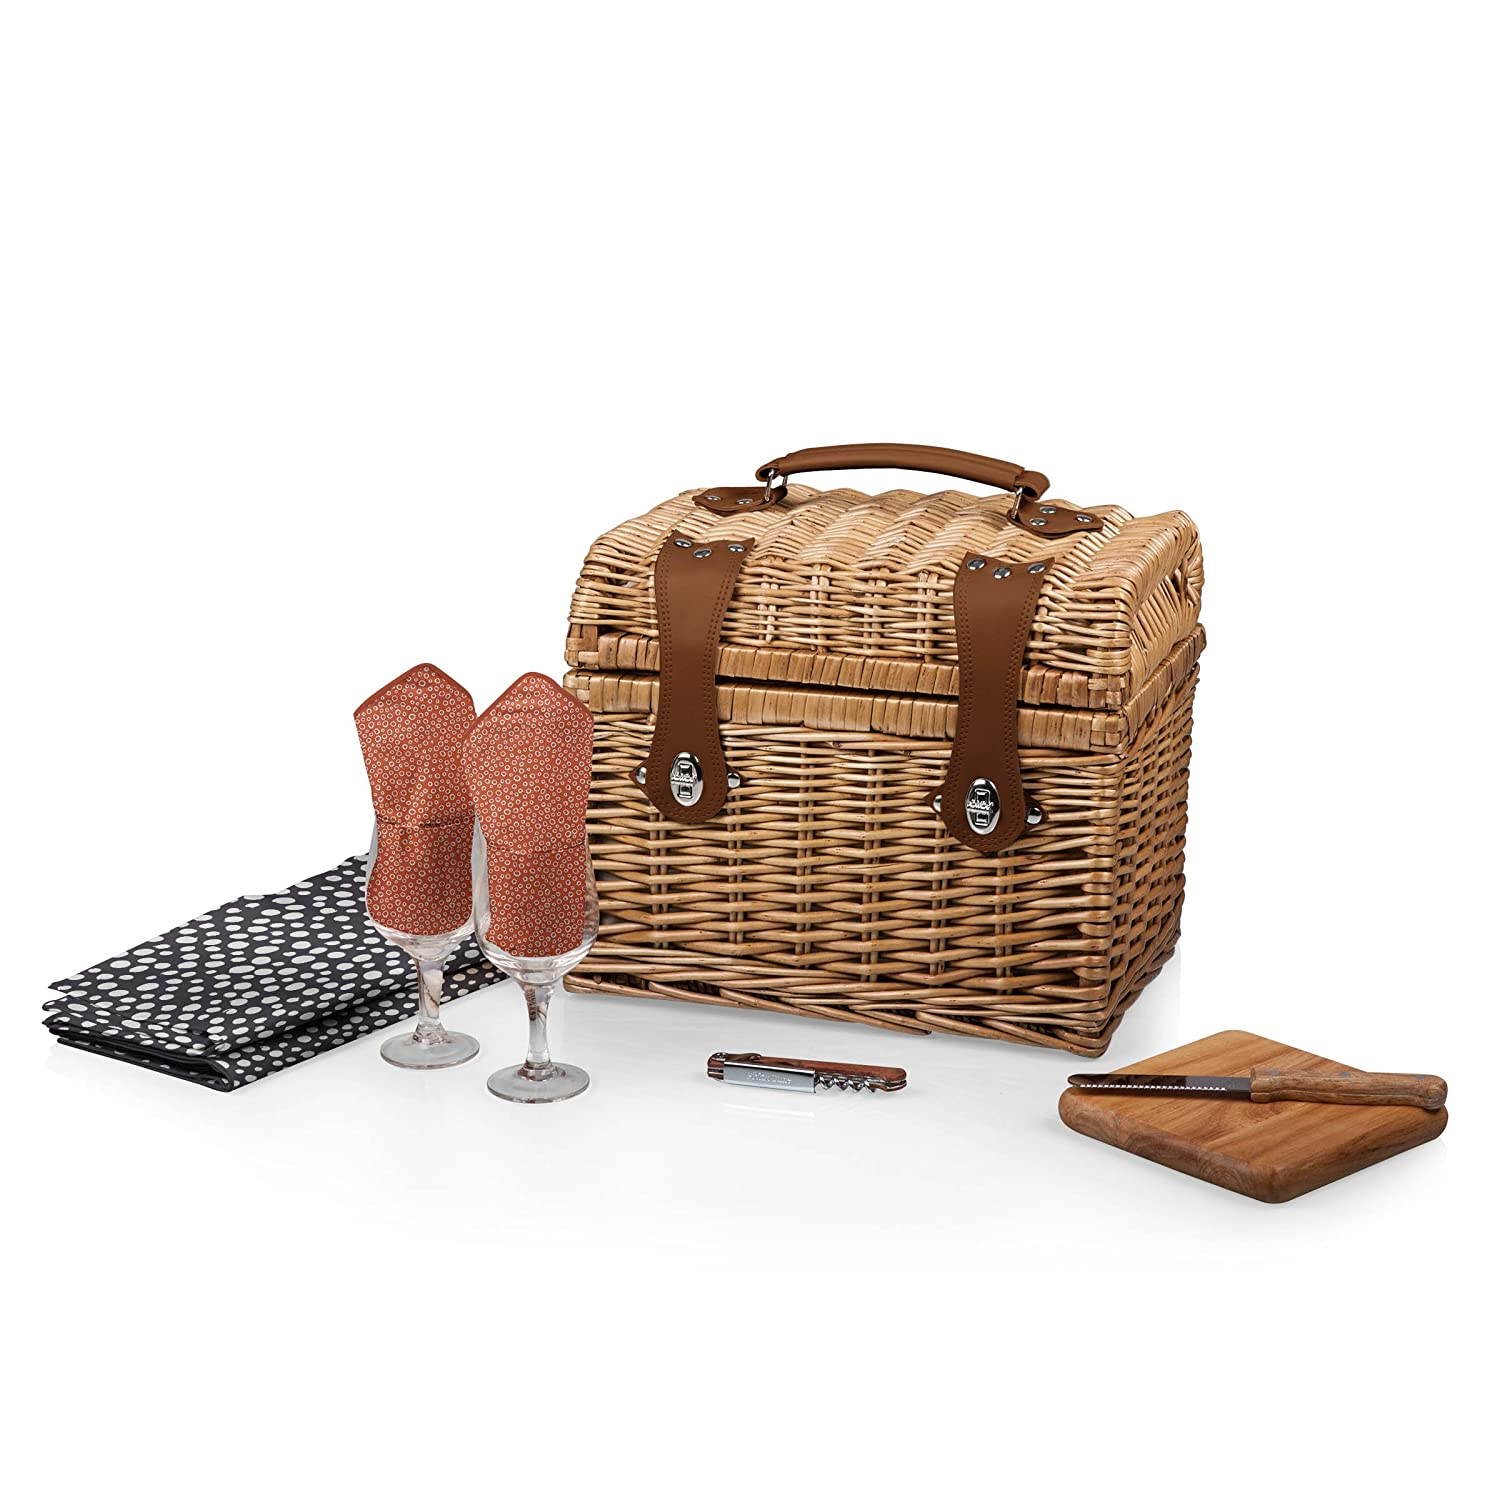 Amazon.com: Picnic Time U0027Napau0027 Picnic Basket With Wine And Cheese Service  For Two, Botanica Collection: Patio, Lawn U0026 Garden